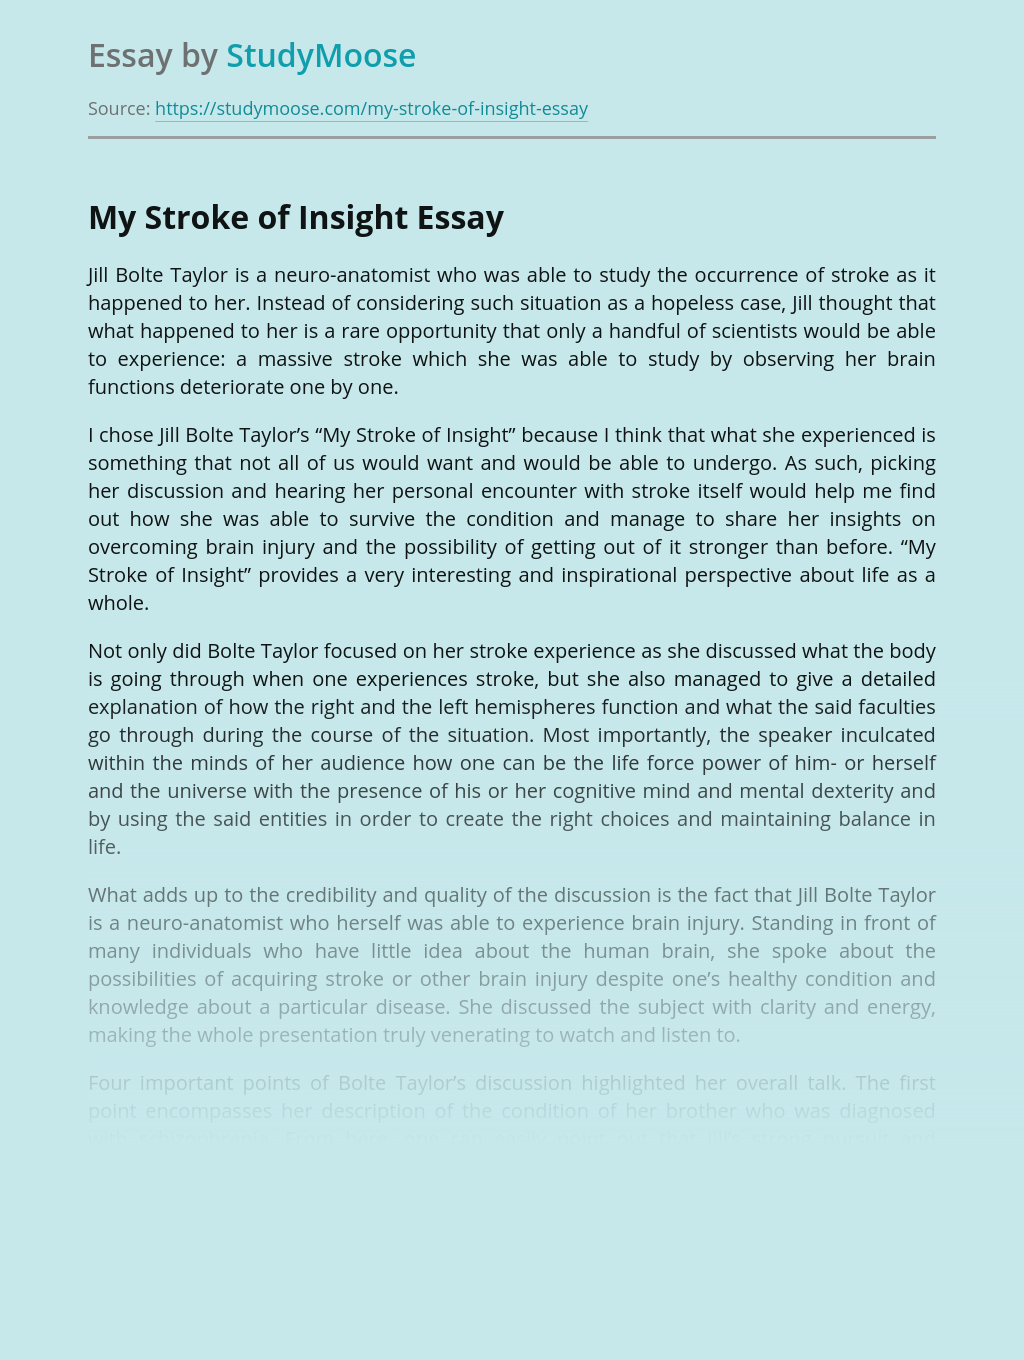 """About Jill Bolte Taylor's """"My Stroke of Insight"""""""